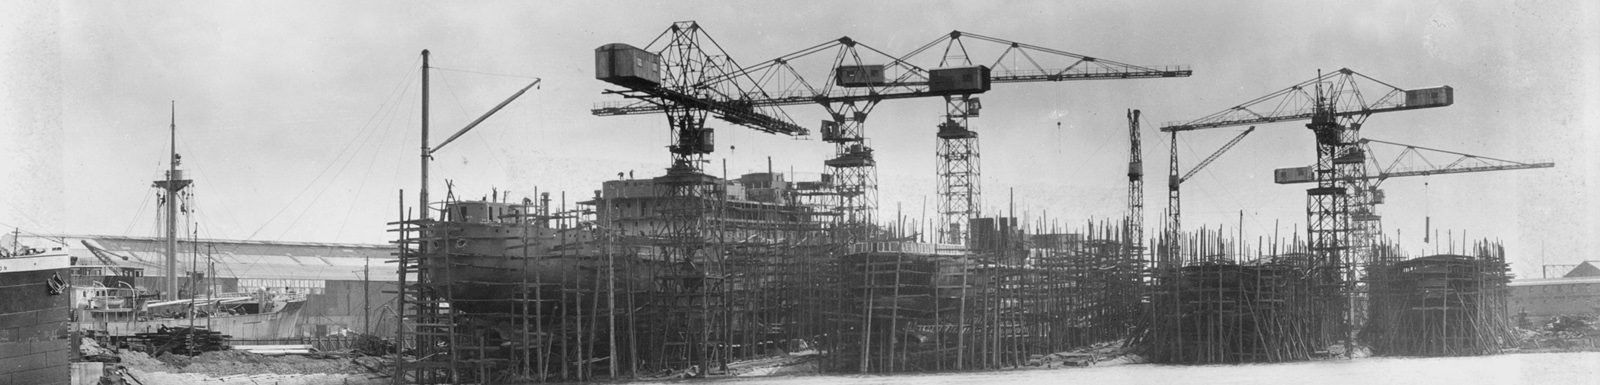 Industrial history of the Clyde: Clyde shipbuilding - John